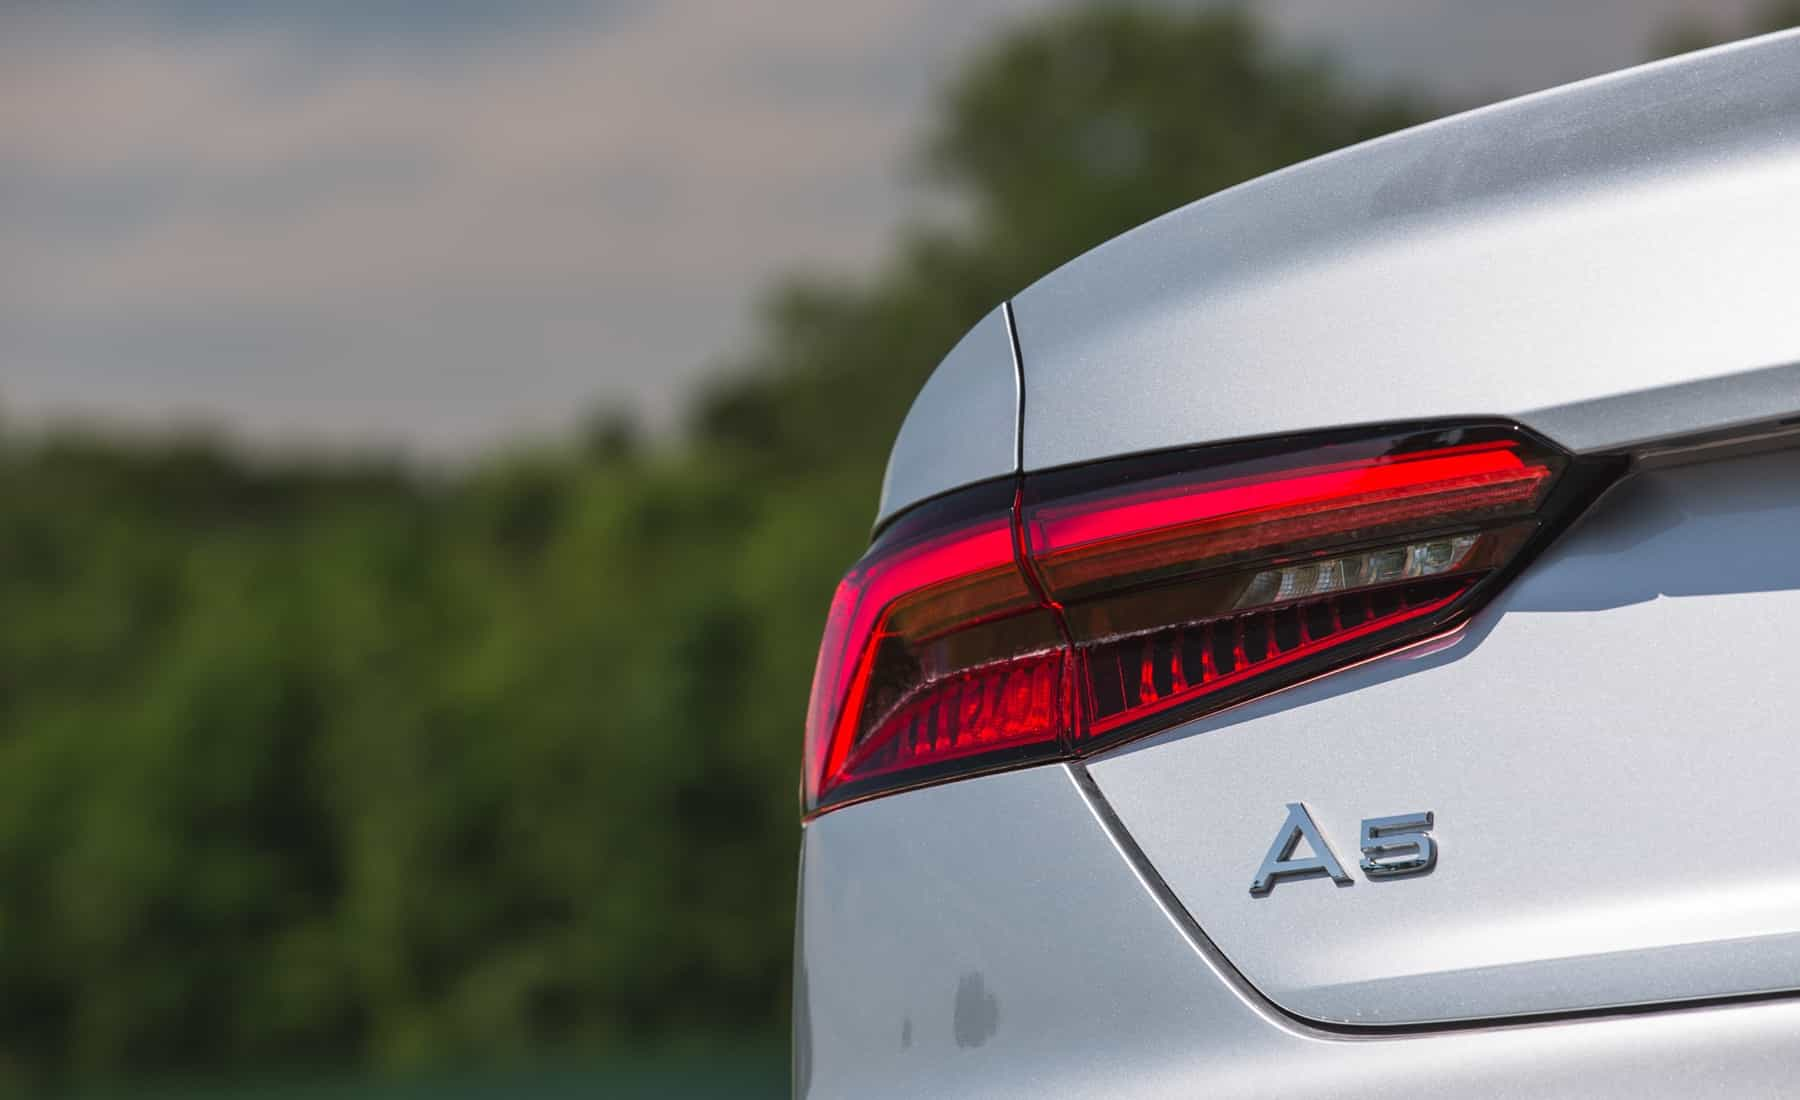 2018 Audi A5 Cabriolet Exterior View Taillight And Emblem (Photo 16 of 45)